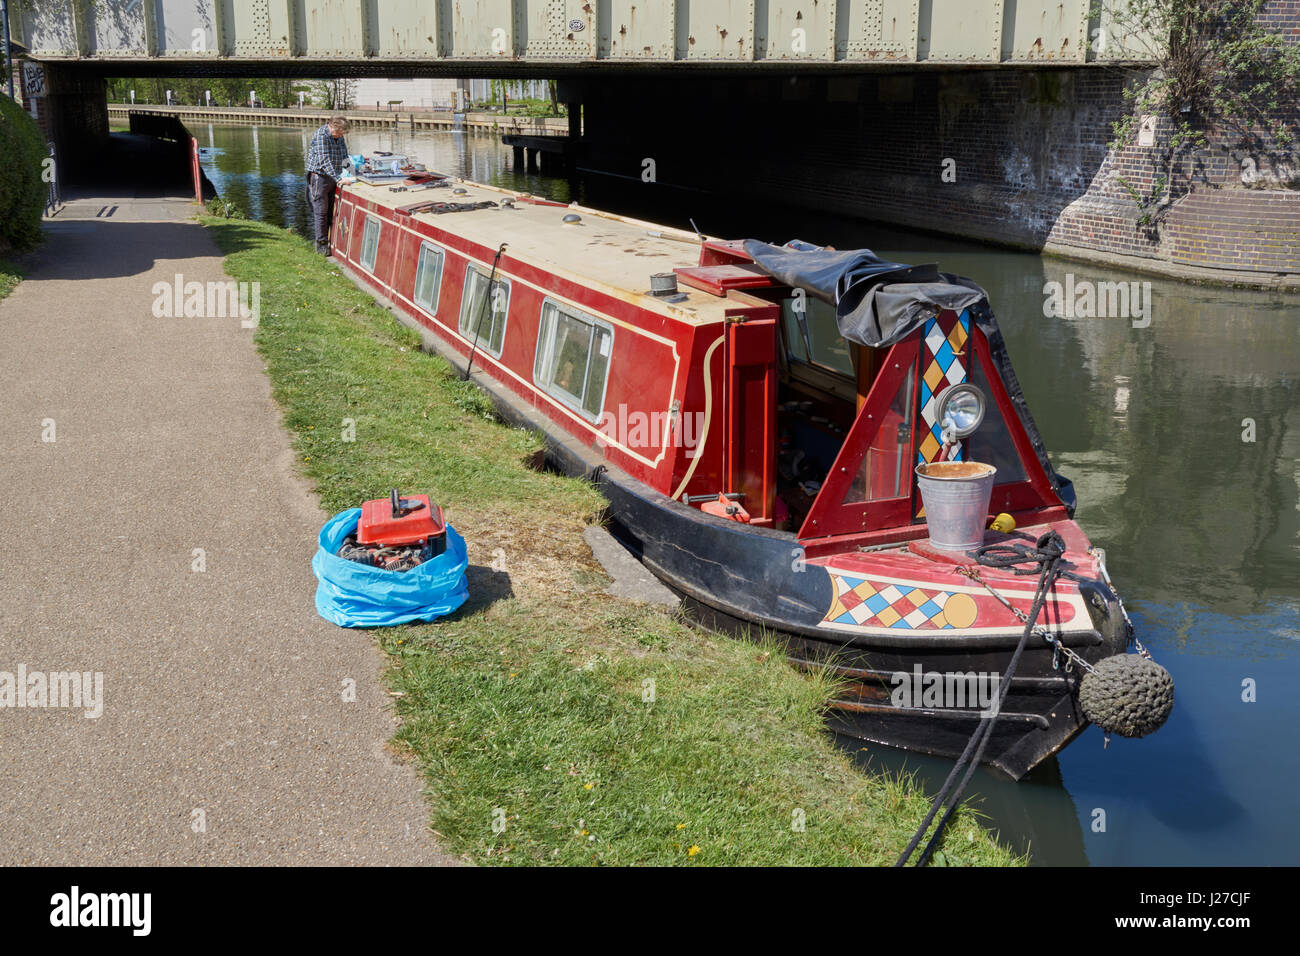 Man working on solar panel for canal boat - Stock Image